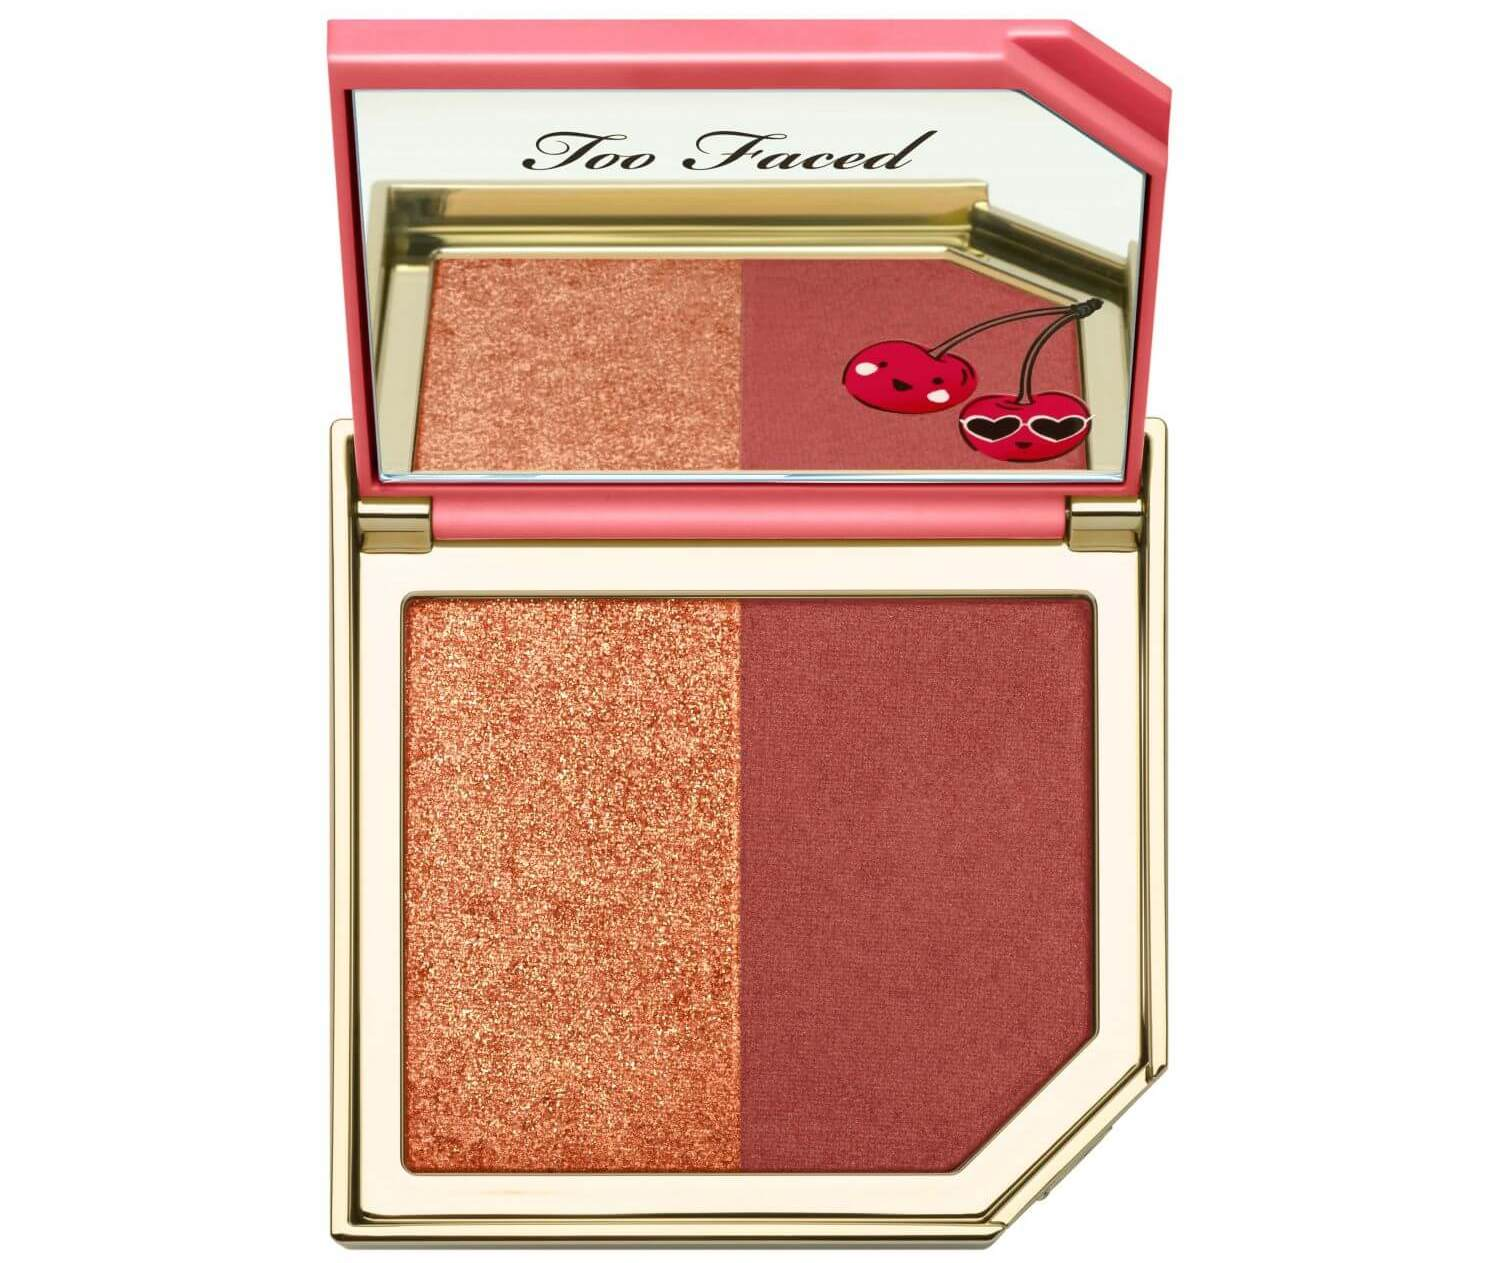 revue-collection-tutti-frutti-too-faced-blush-fruit-cocktail-strobeberry-sephora-france-makeupbyazadig-swatch-avis-prix-rose-CherryBomb